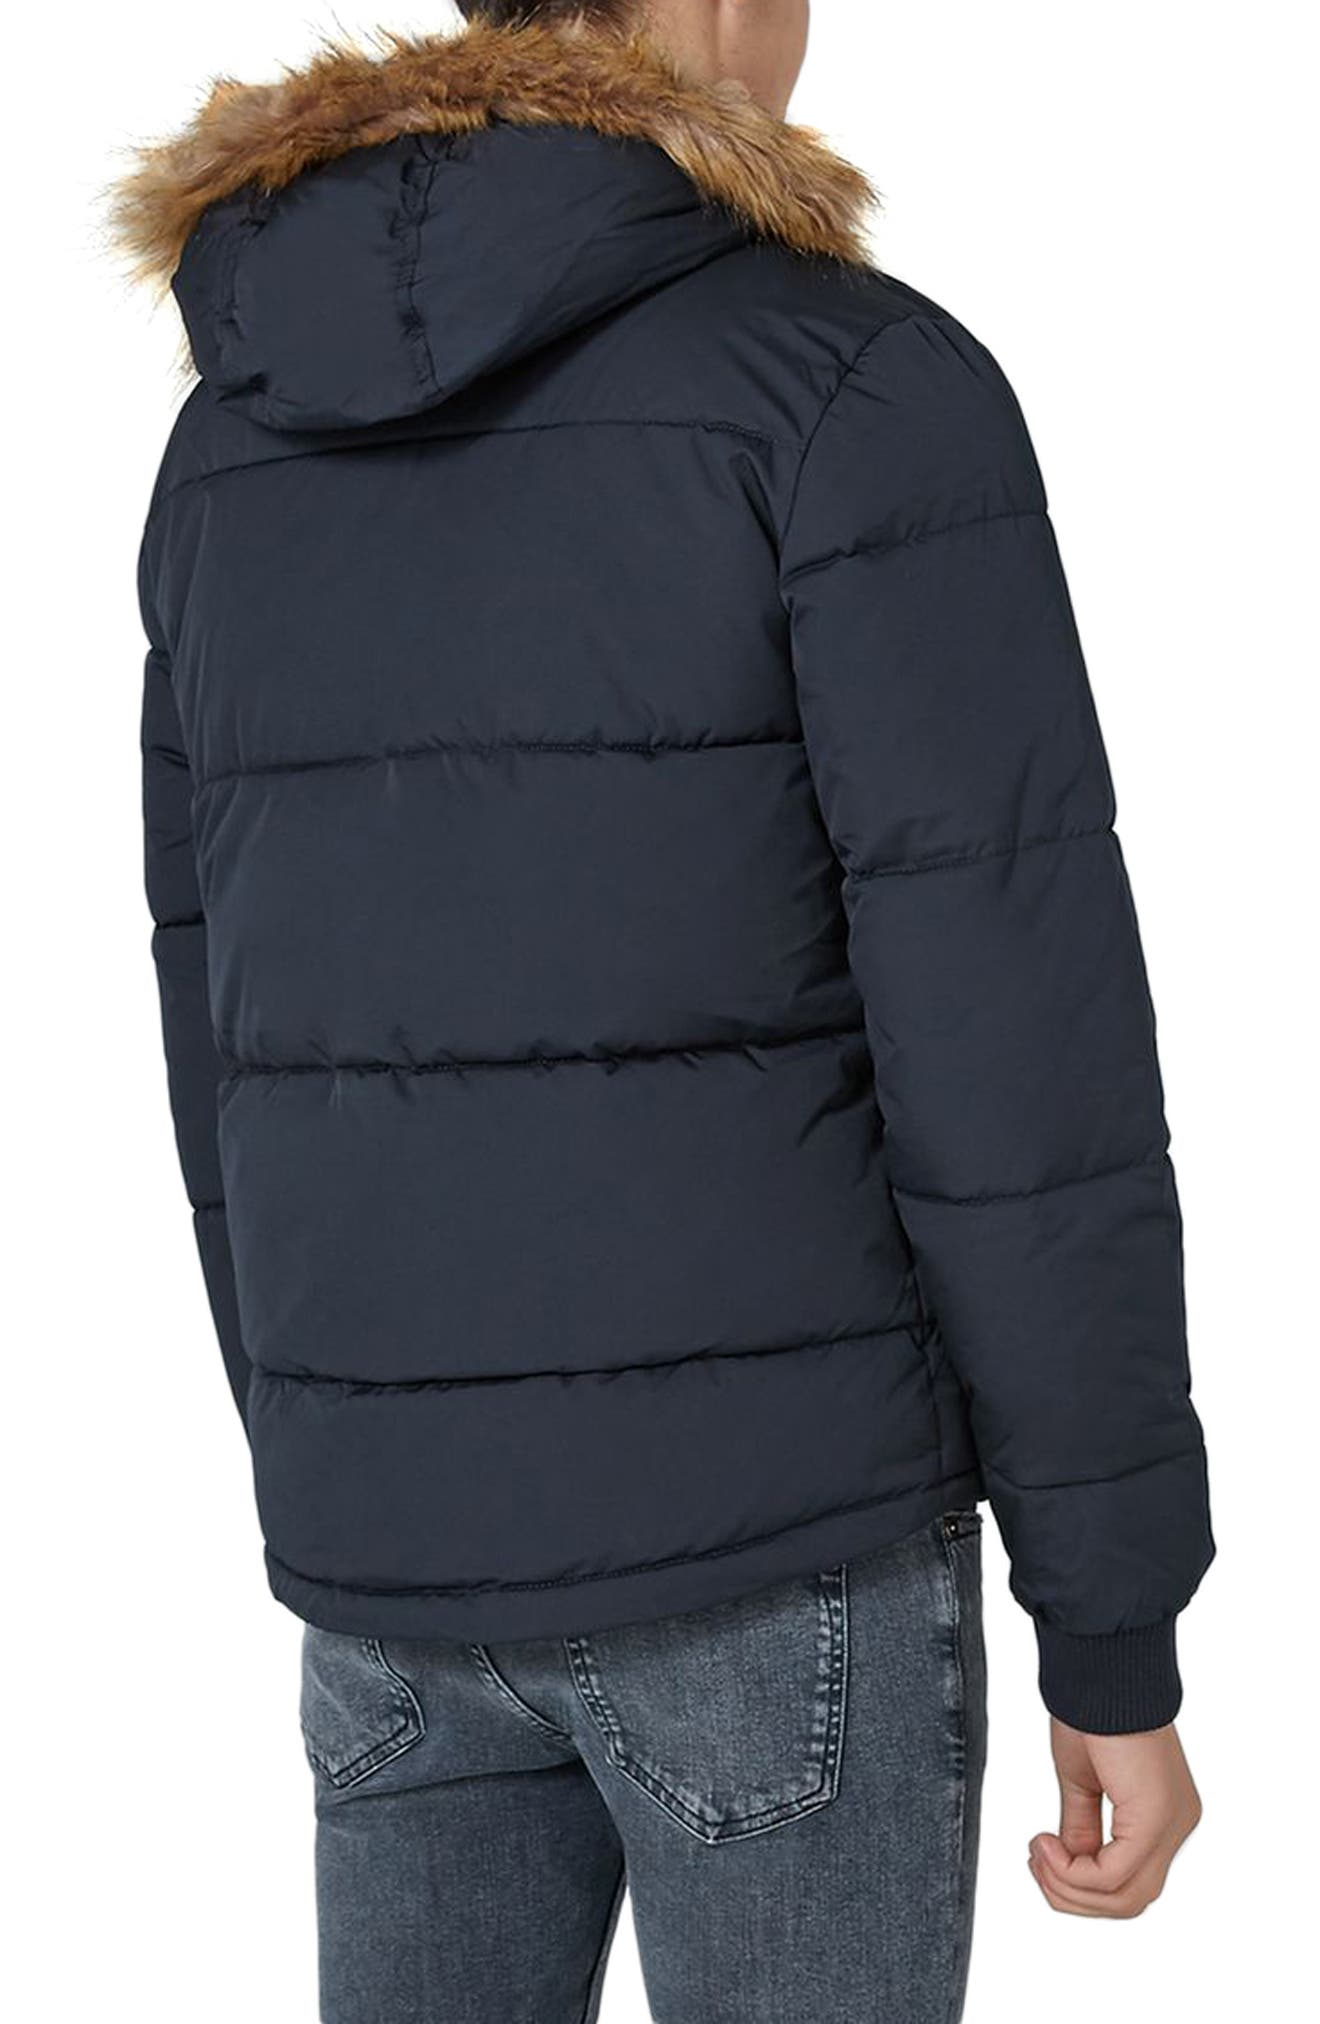 Maguire Hooded Puffer Coat with Faux Fur Trim,                             Alternate thumbnail 2, color,                             Navy Blue